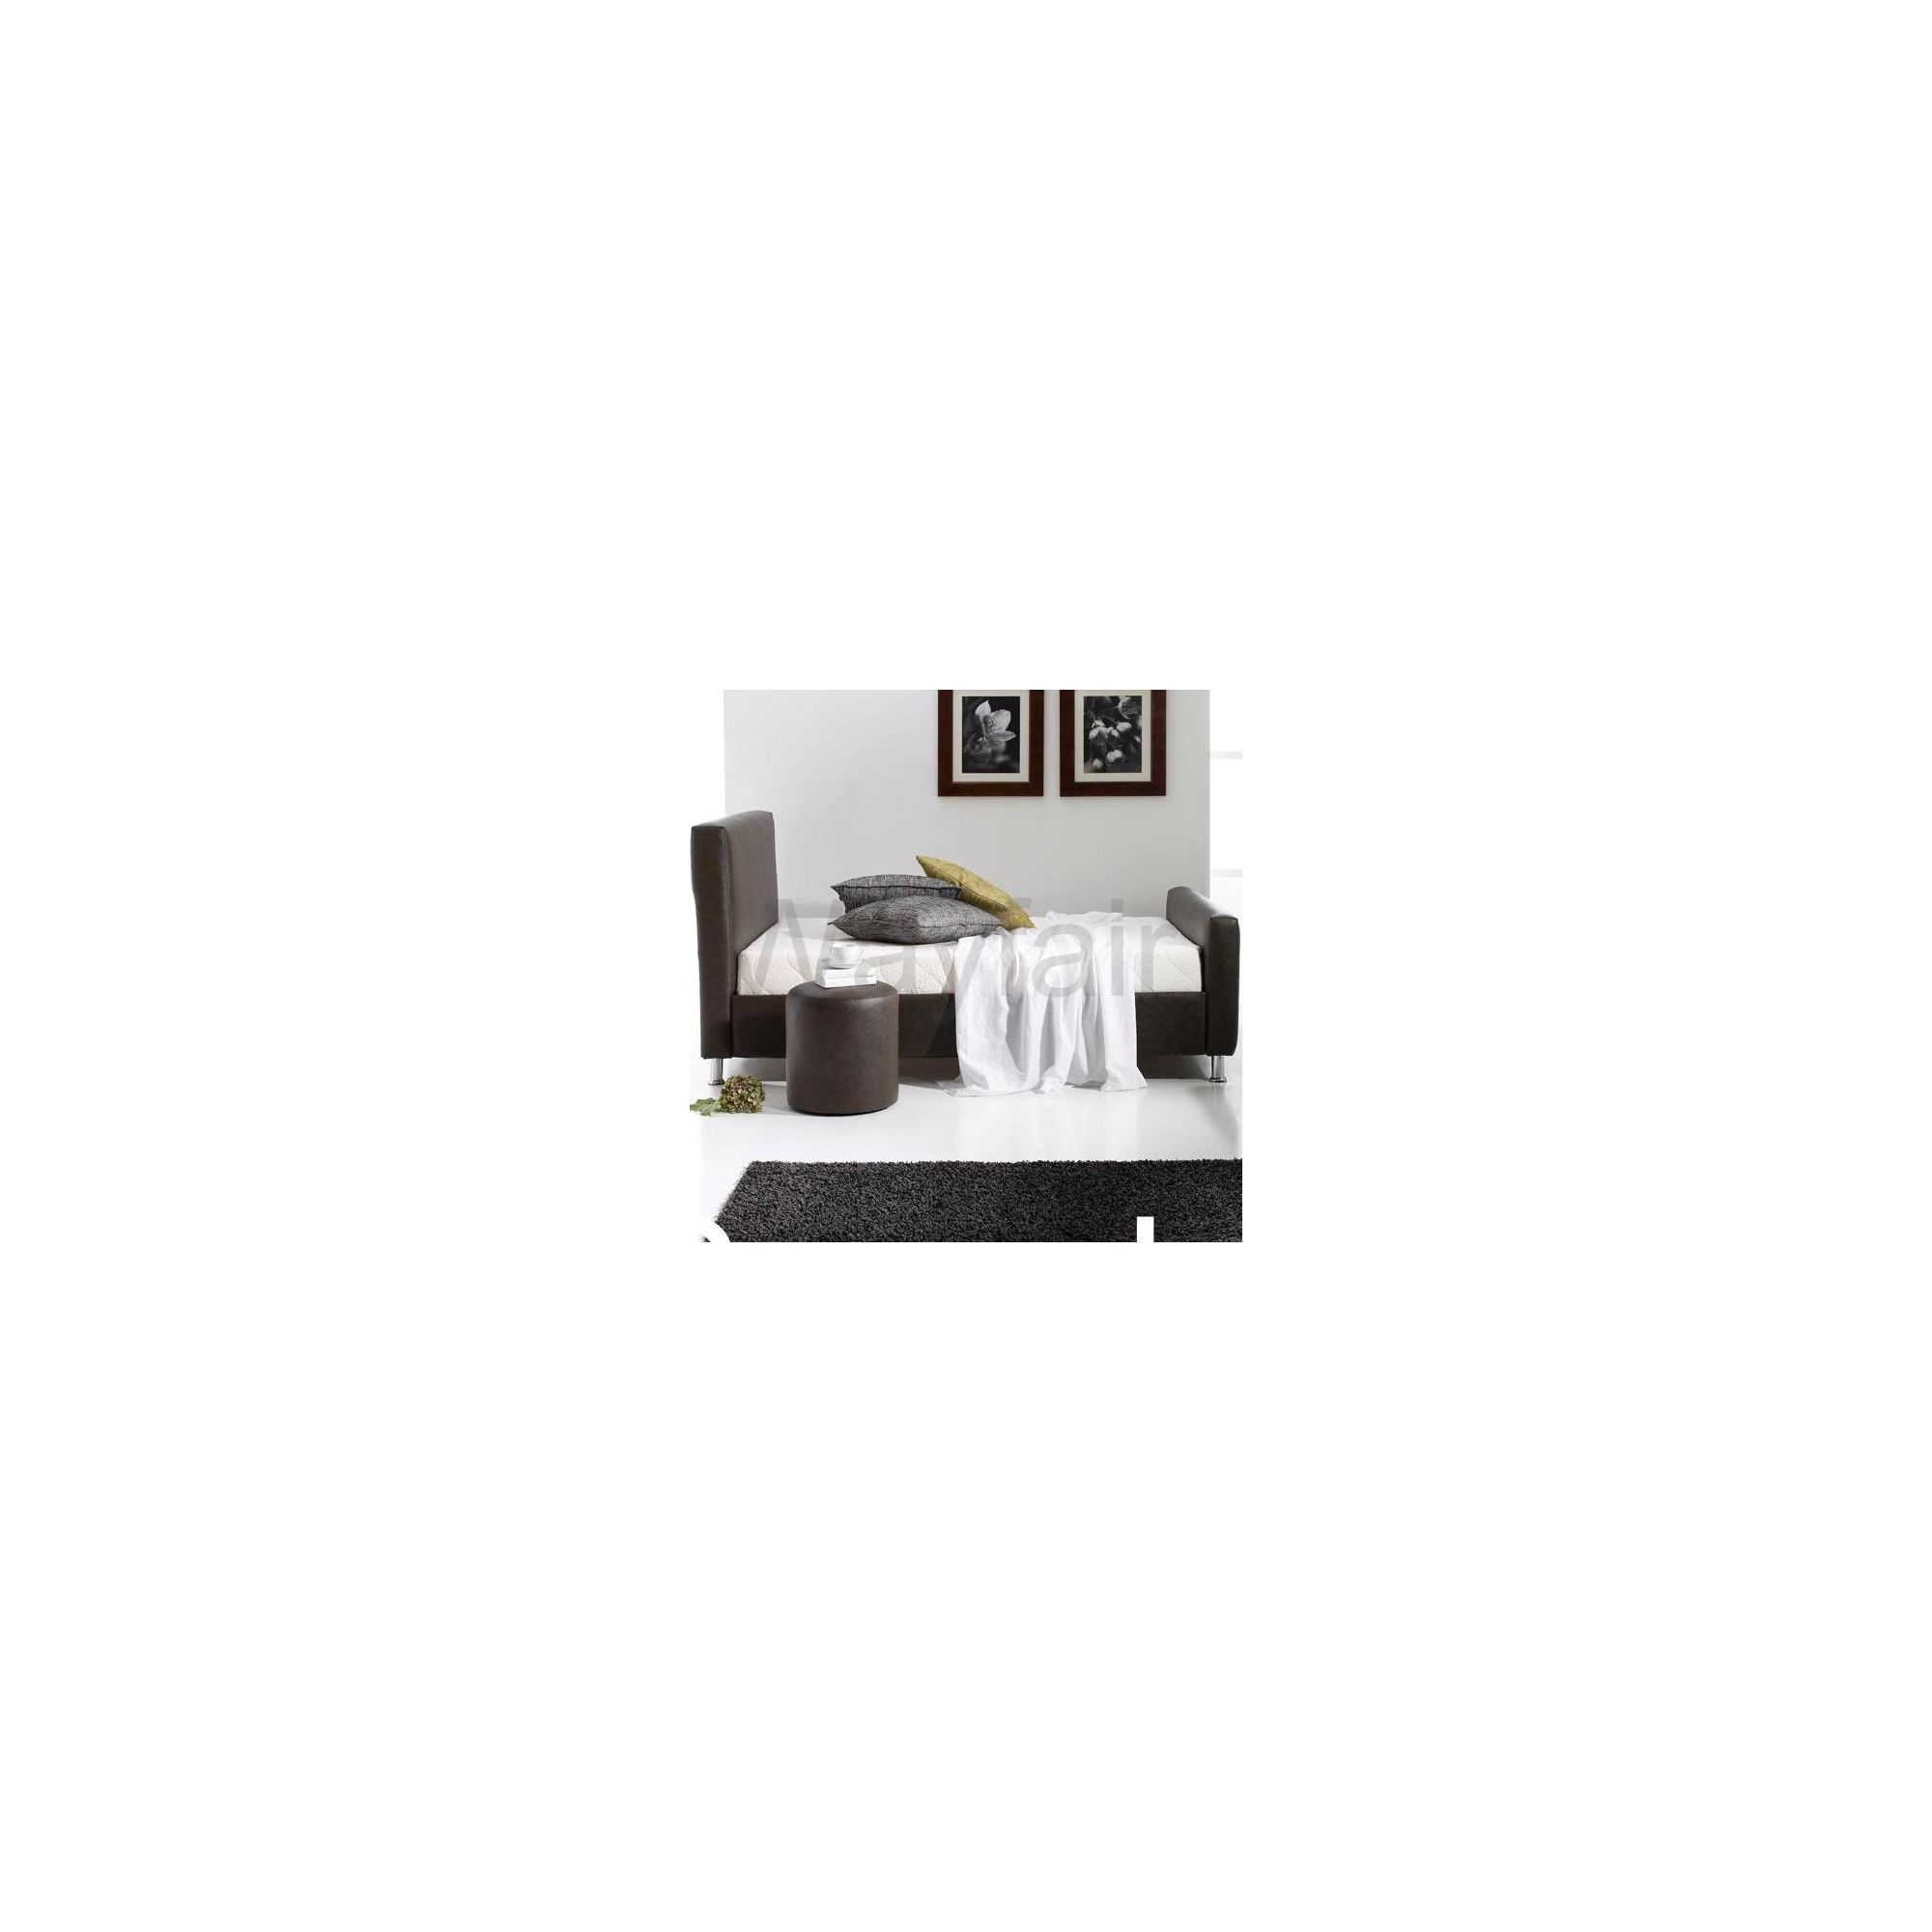 MA Living Murin Bed - faux leather Black - Single at Tesco Direct